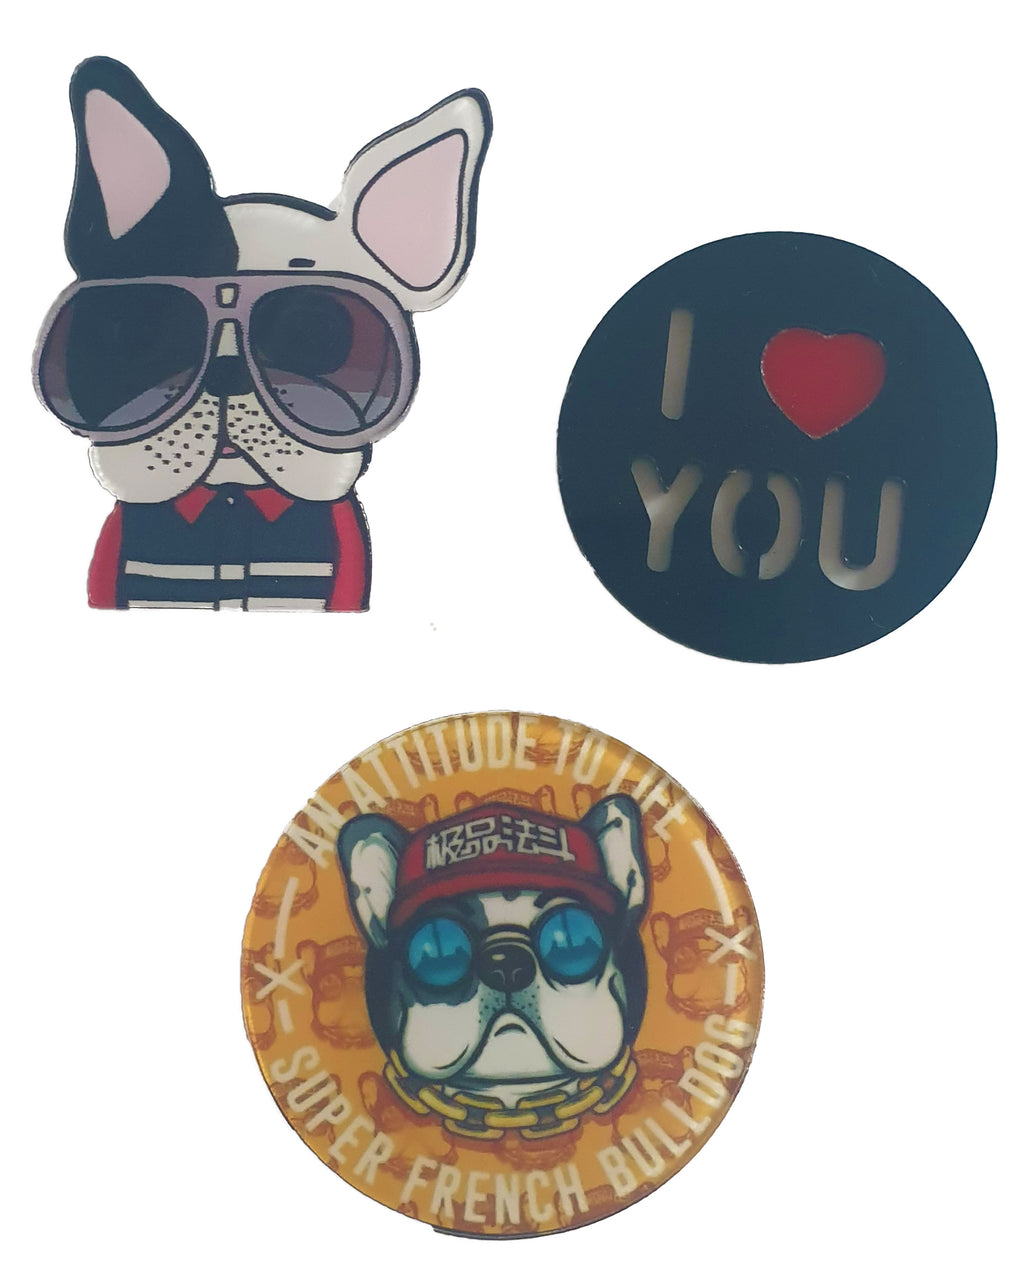 Dog ILU x 3 Pin - Roses & Rhinos